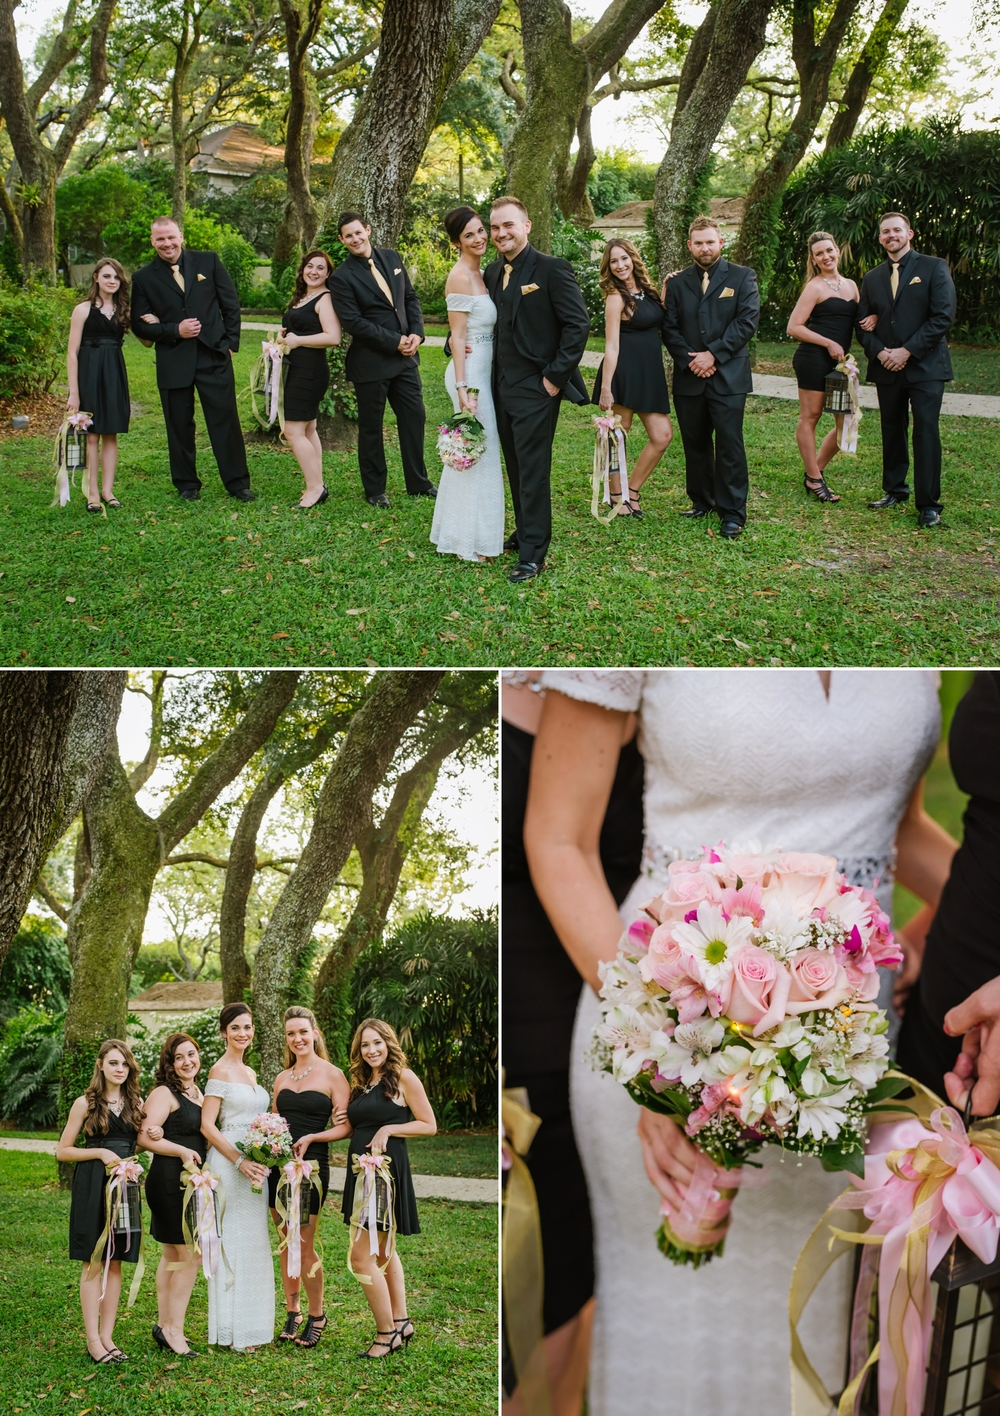 ashlee-hamon-photography-tampa-rustic-outdoor-traditional-wedding_0009.jpg